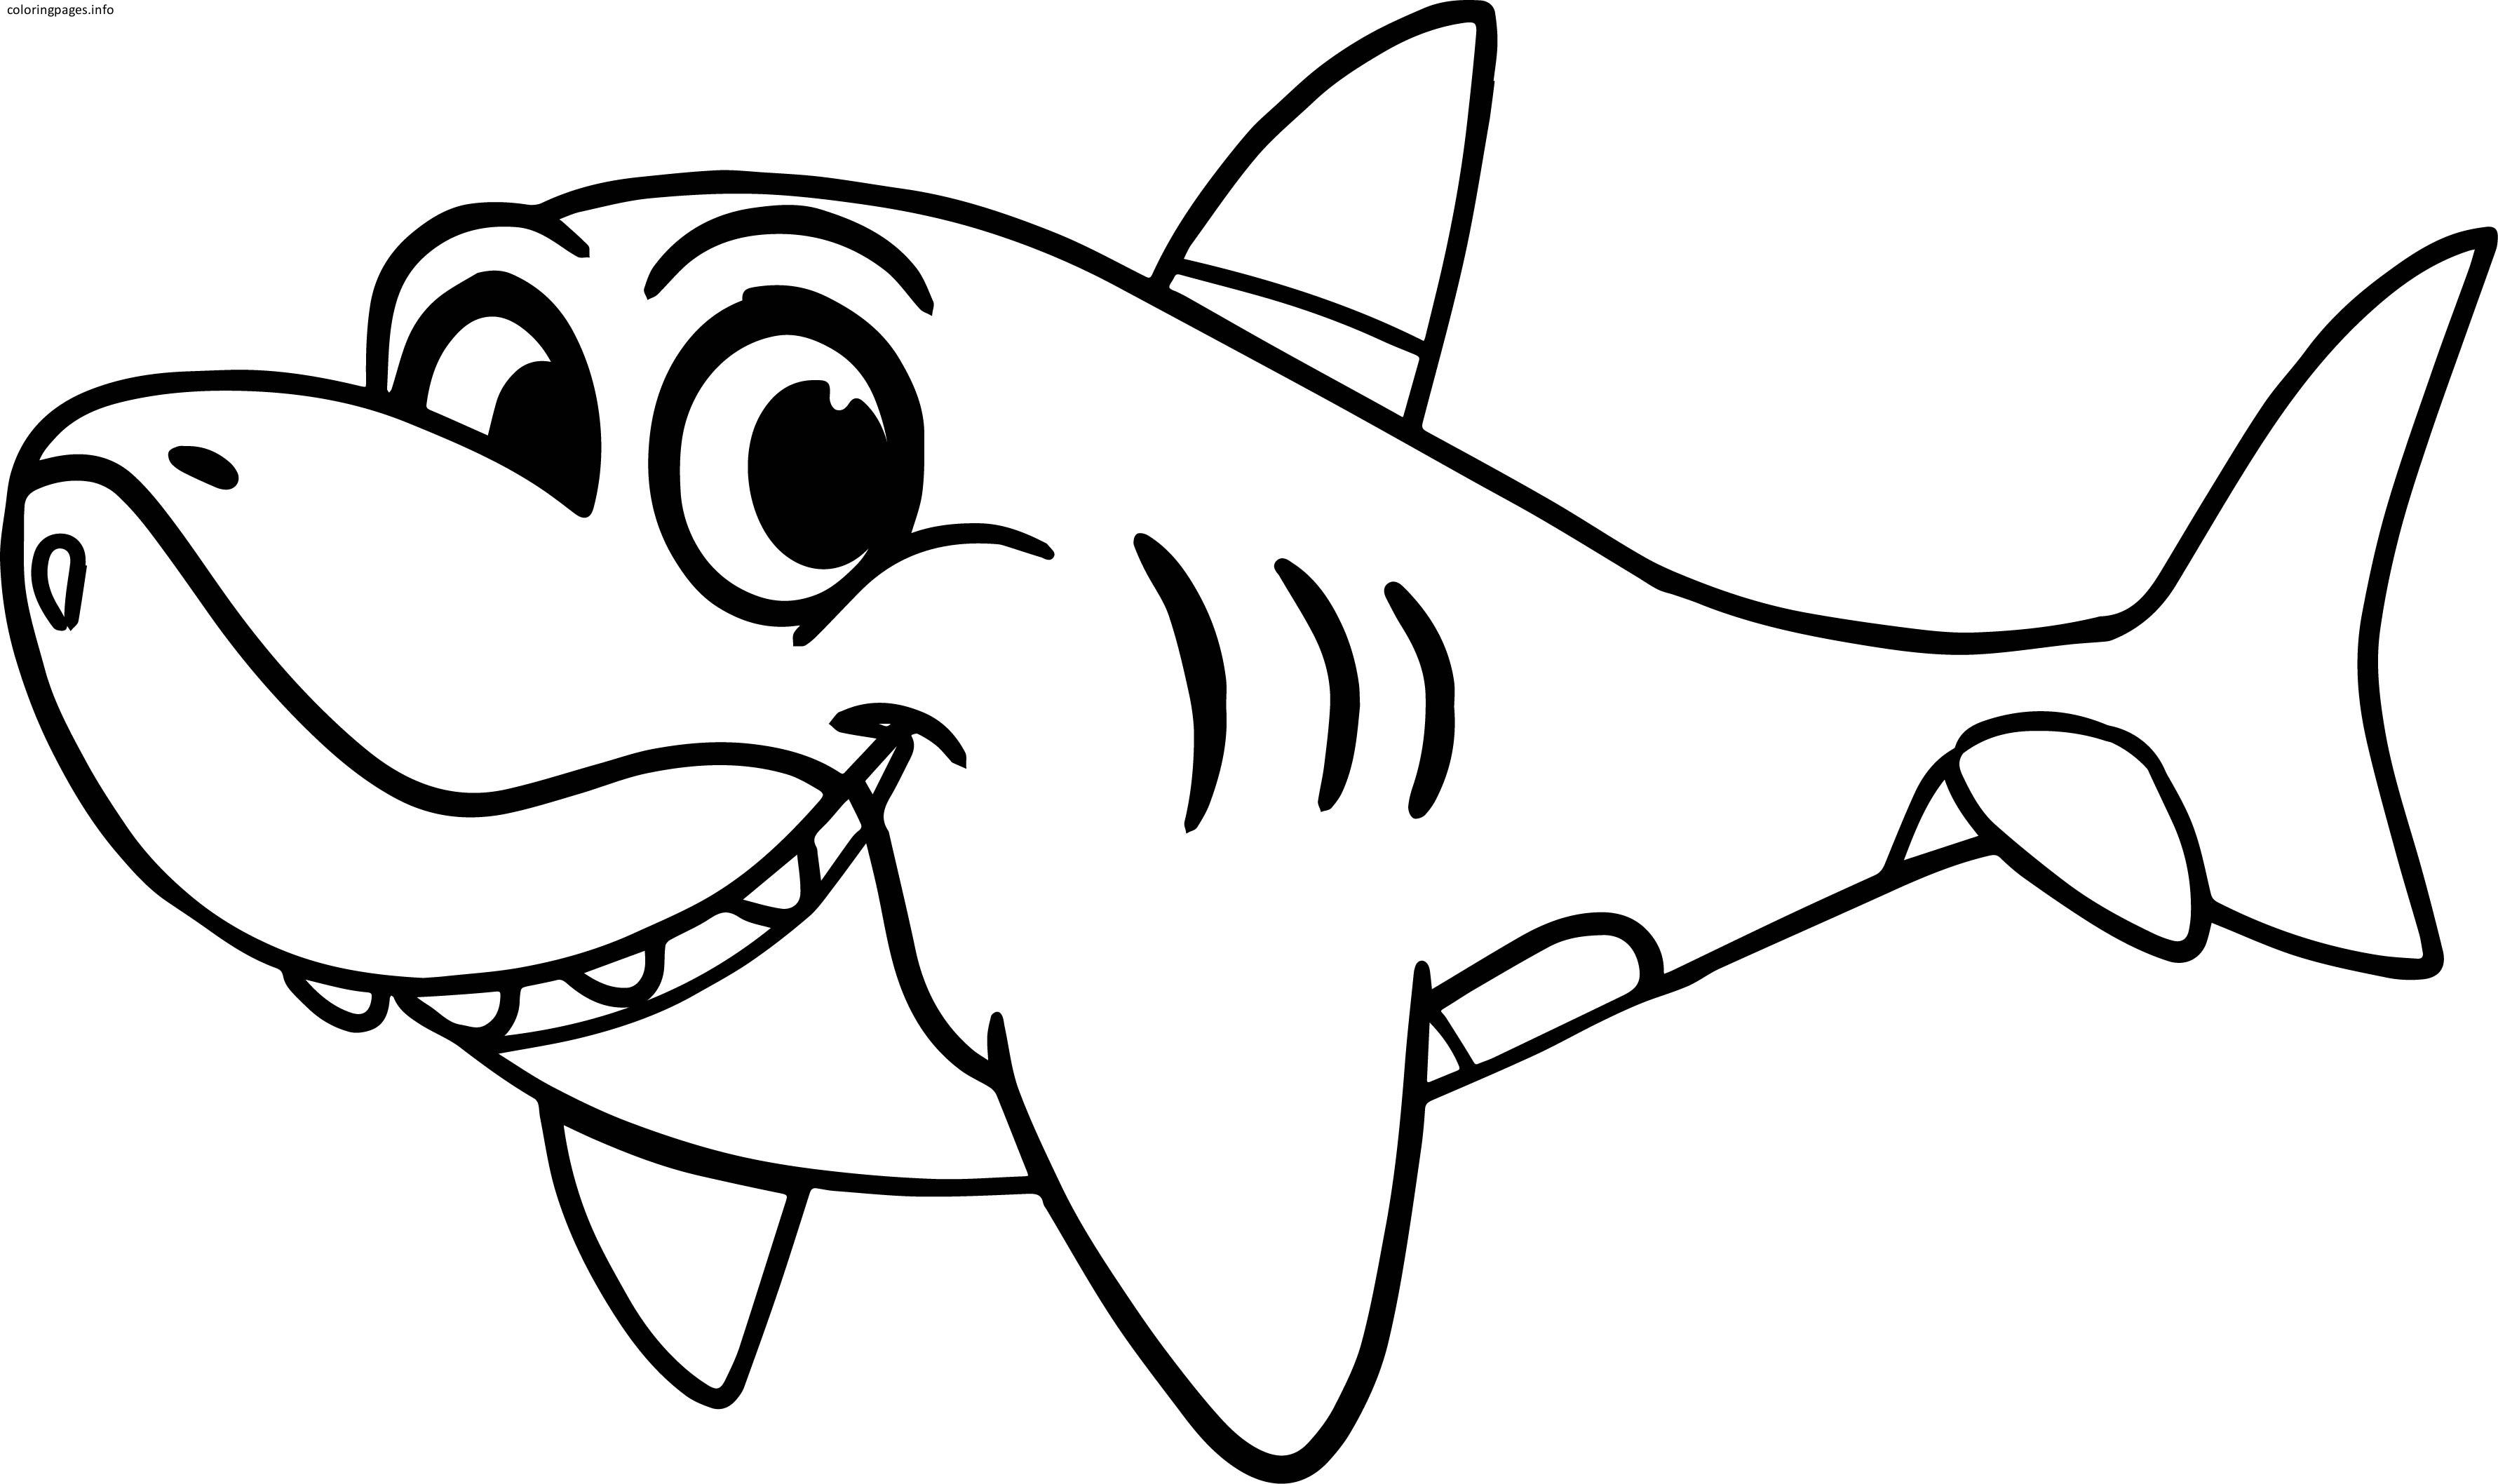 Shark Drawing For Kids at GetDrawings.com | Free for personal use Shark Drawing For Kids of your ...